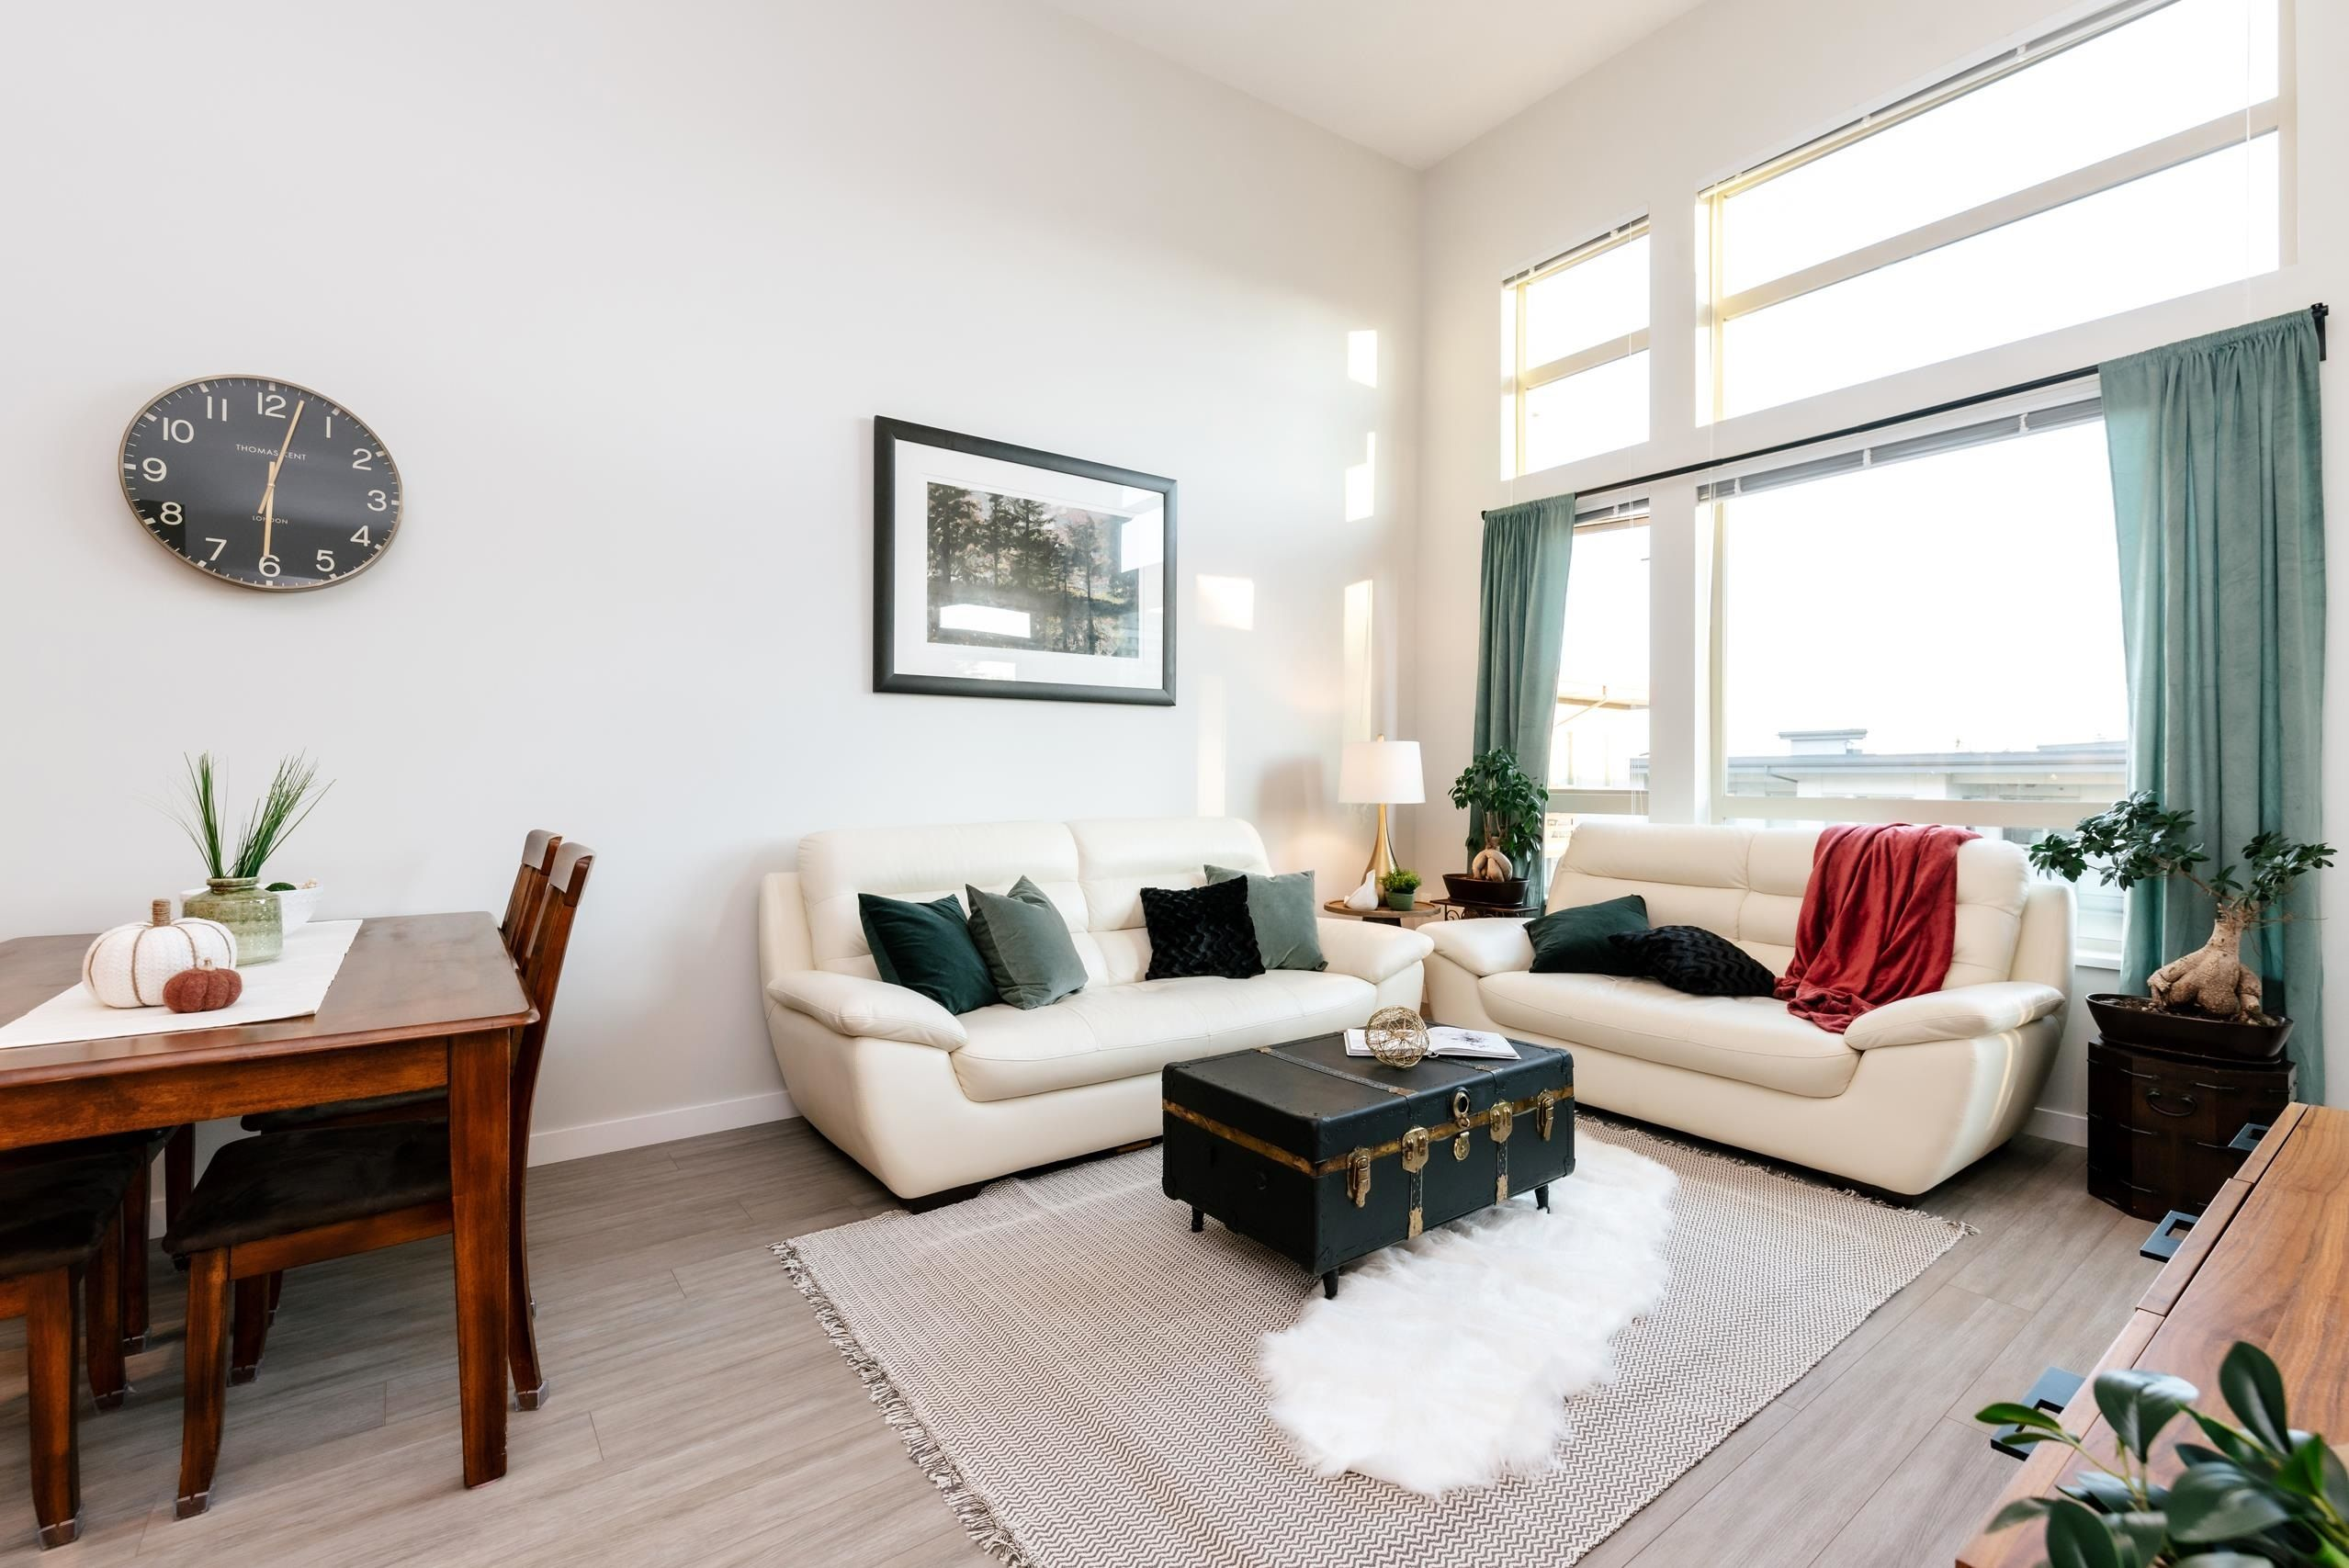 Main Photo: 507 2663 LIBRARY Lane in North Vancouver: Lynn Valley Condo for sale : MLS®# R2624832